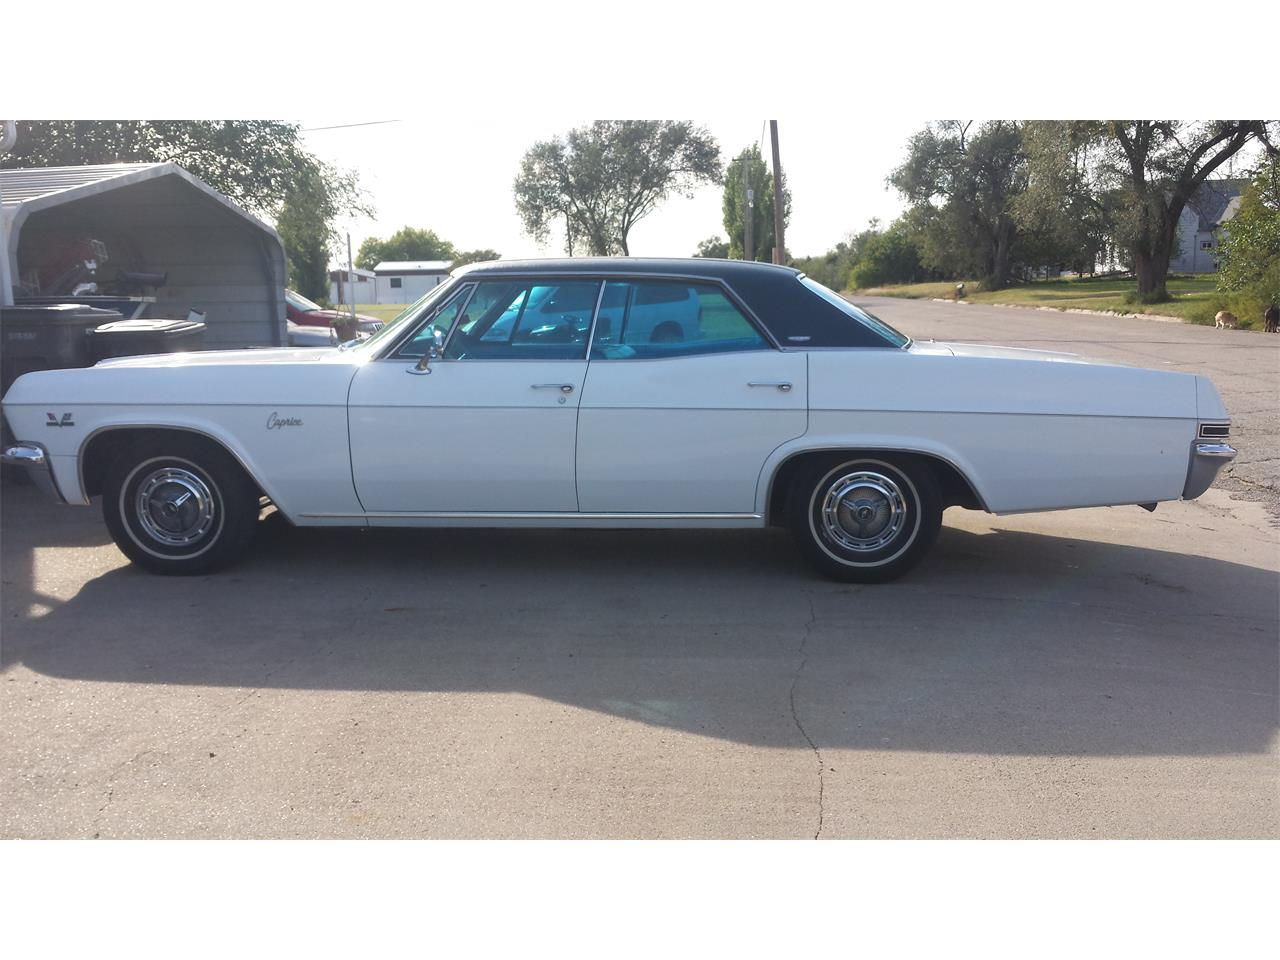 1965 Chevrolet Caprice for sale in Cawker city, KS